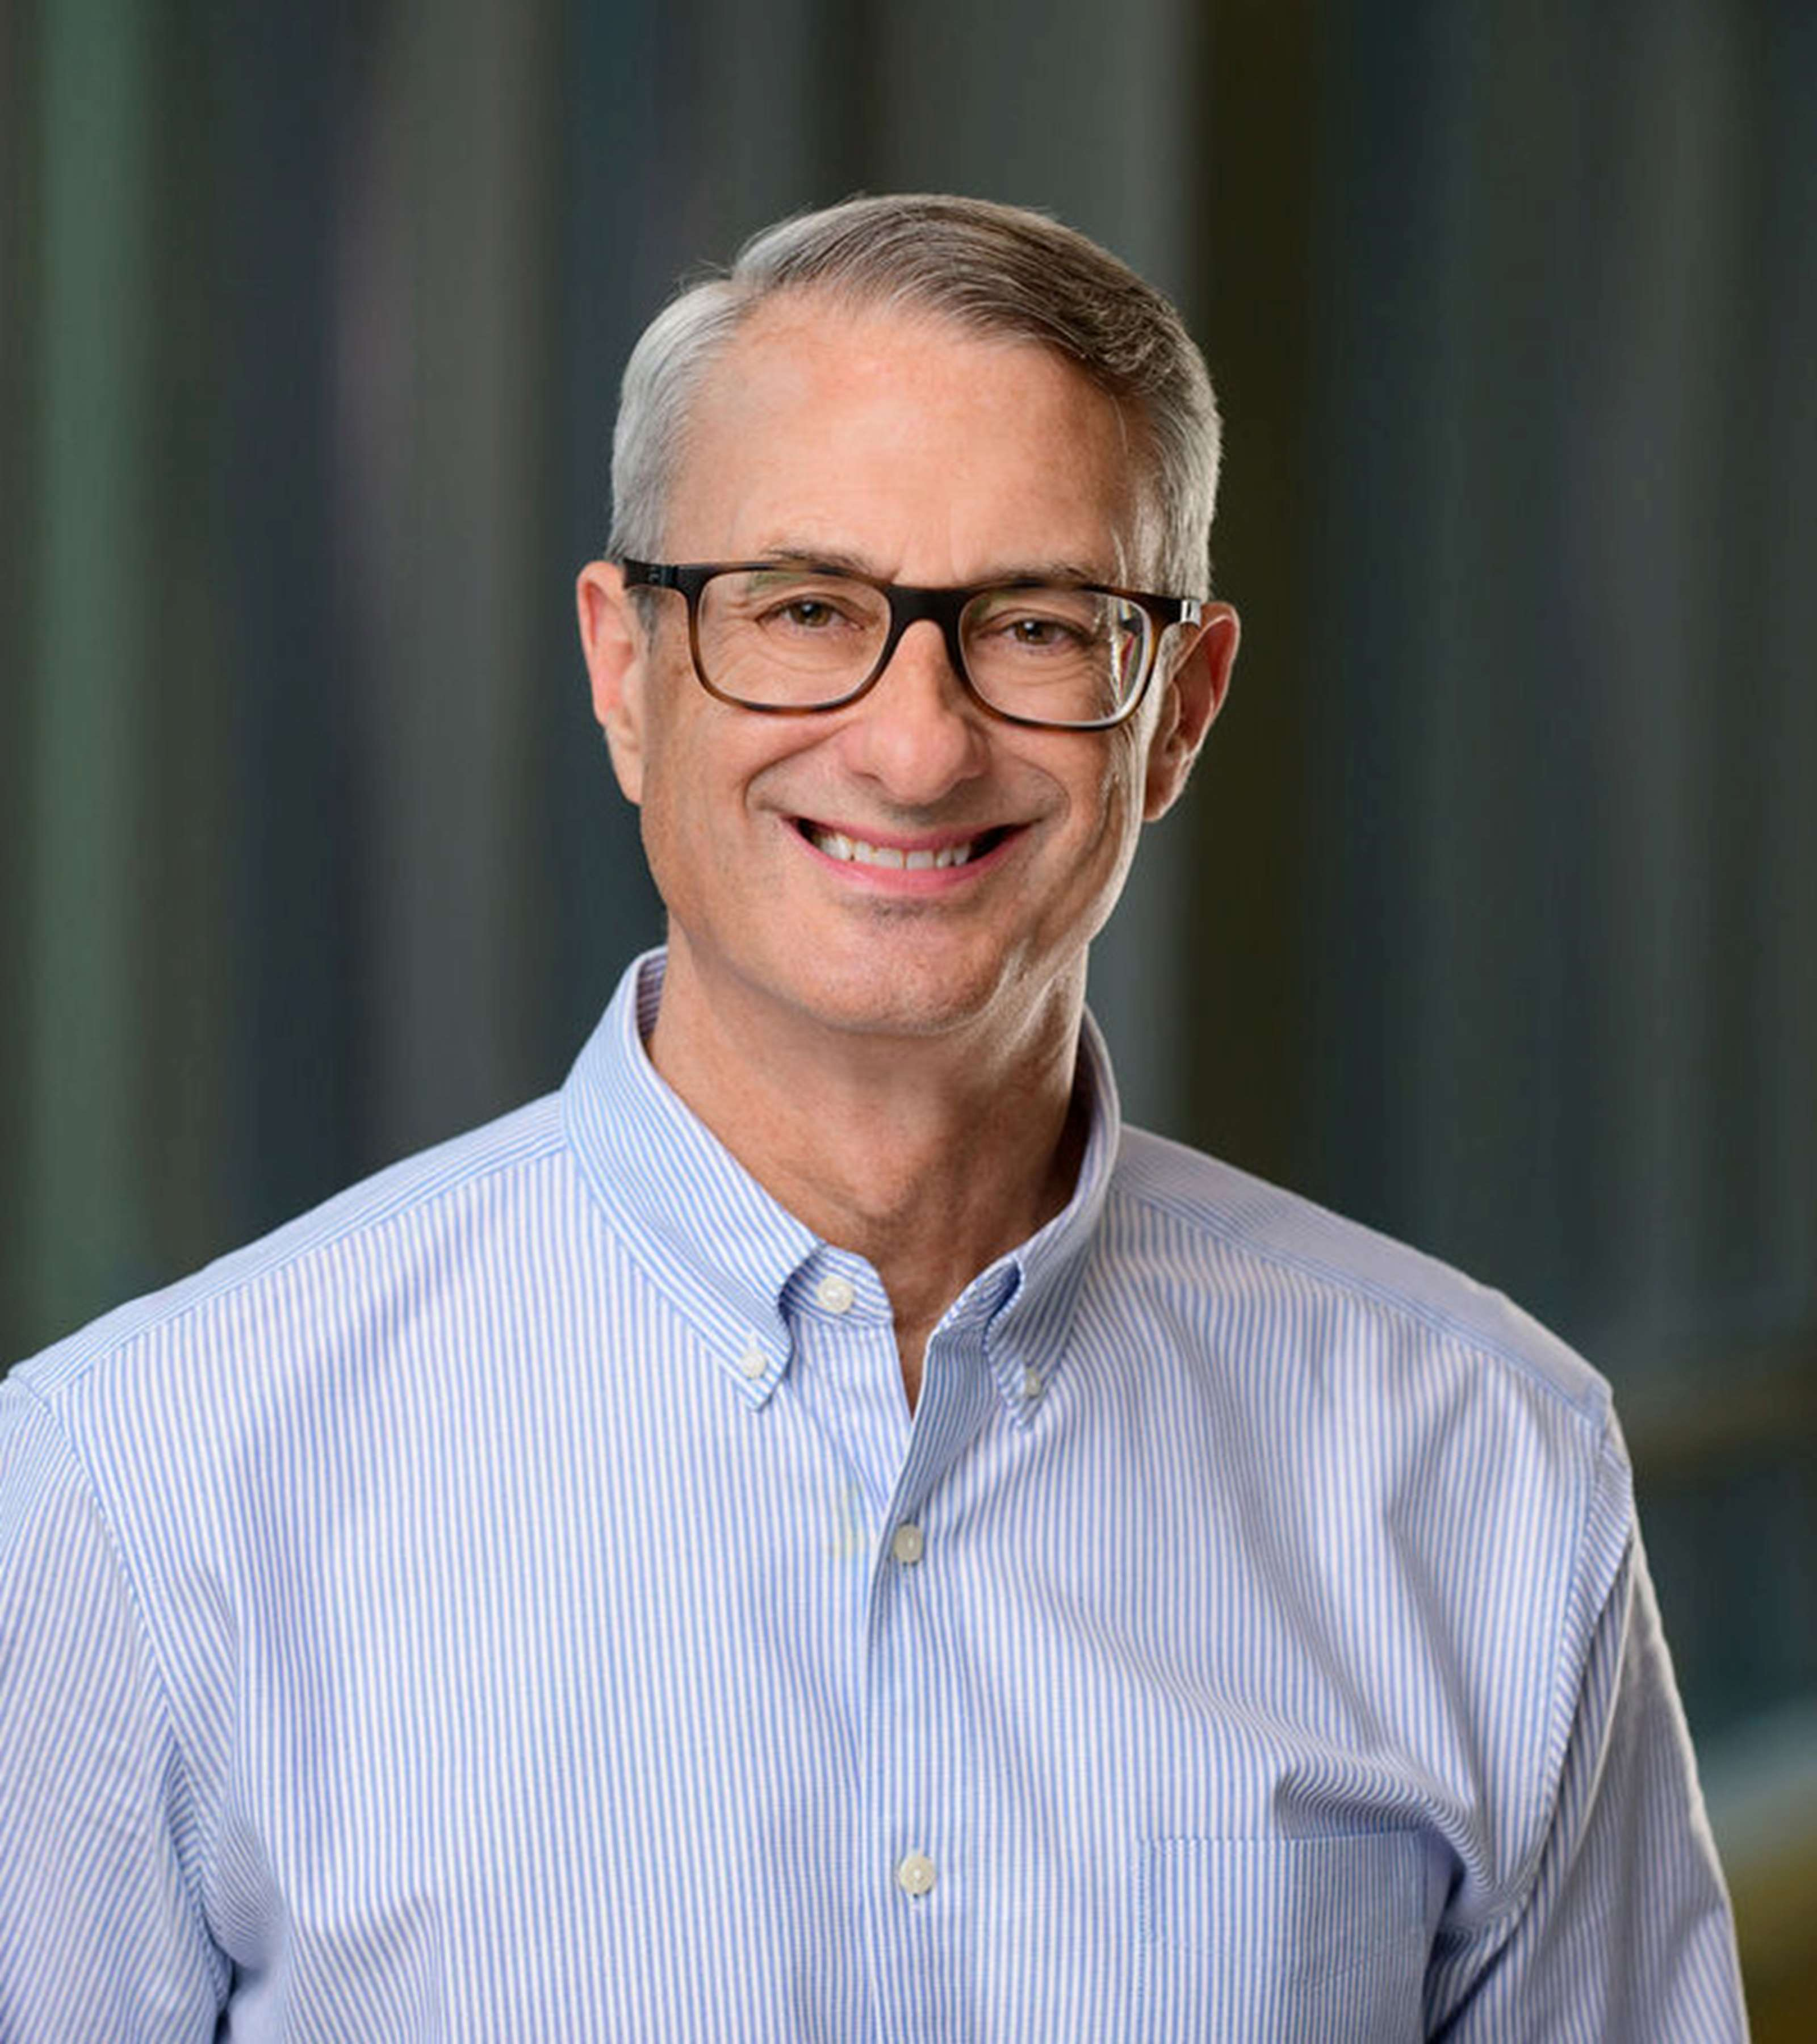 Michael Decker, MD, MPH